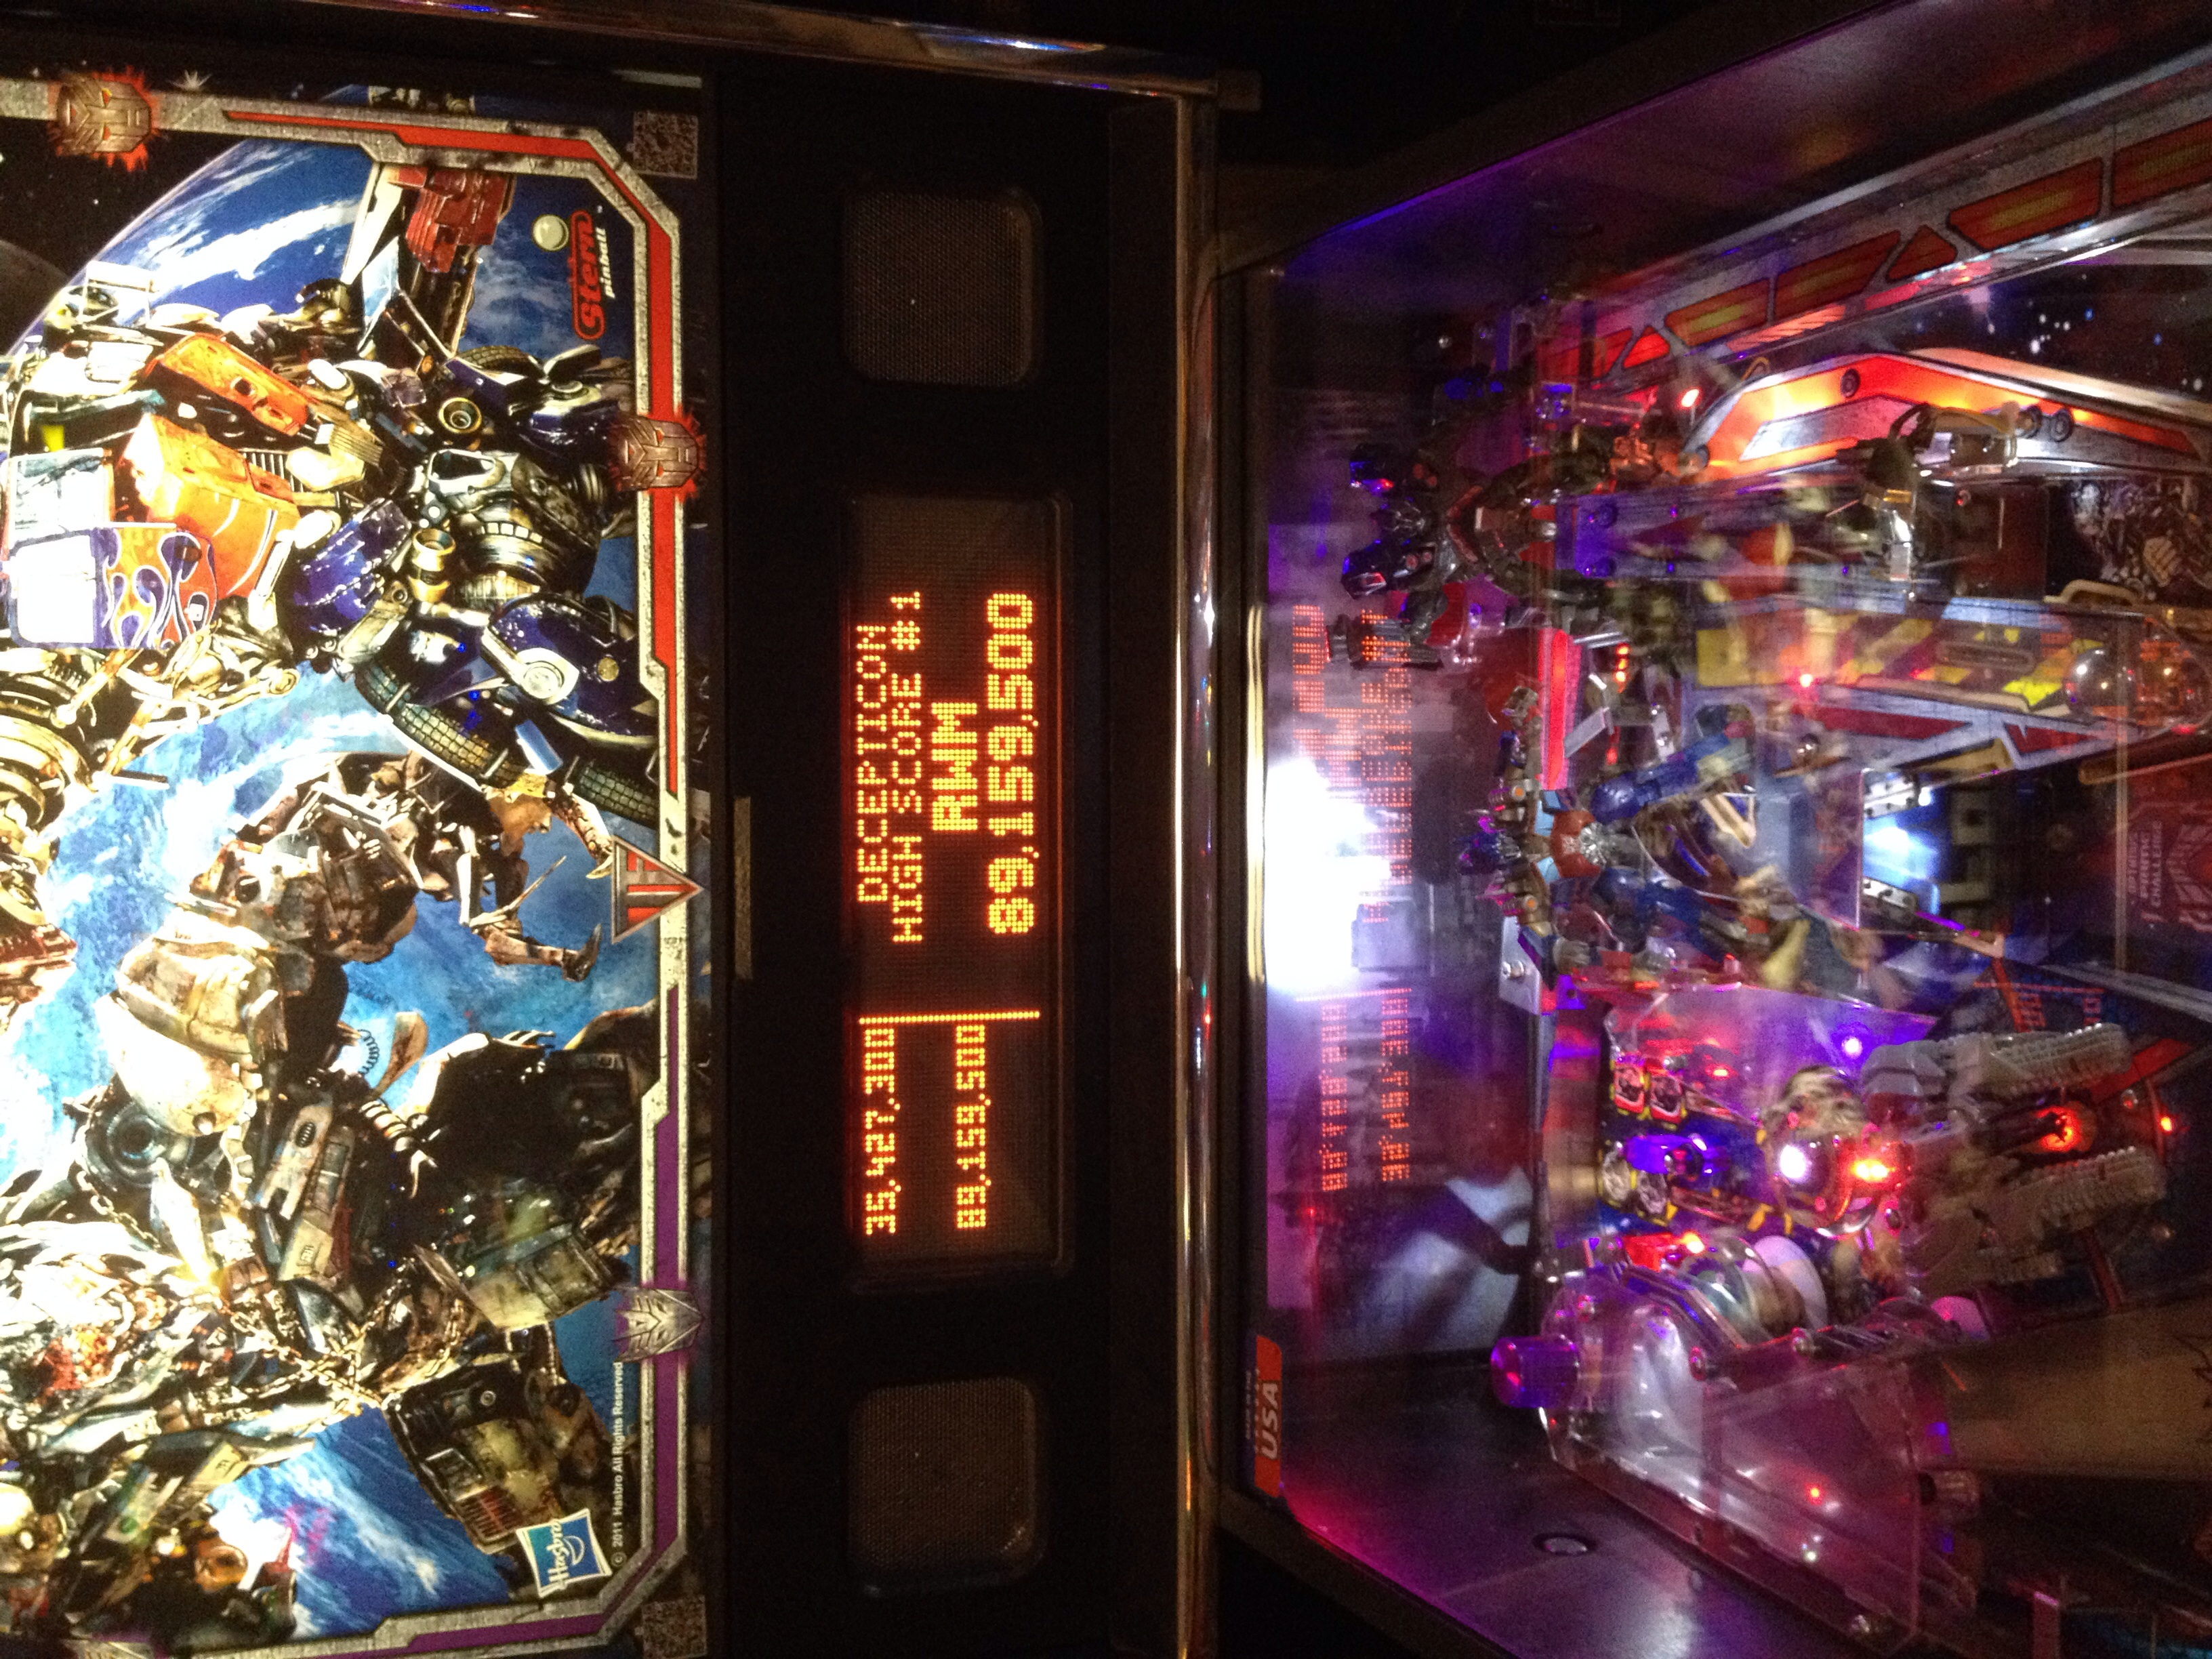 Rachelwmo: Transformers (Pinball: 3 Balls) 89,159,500 points on 2014-09-09 22:46:31